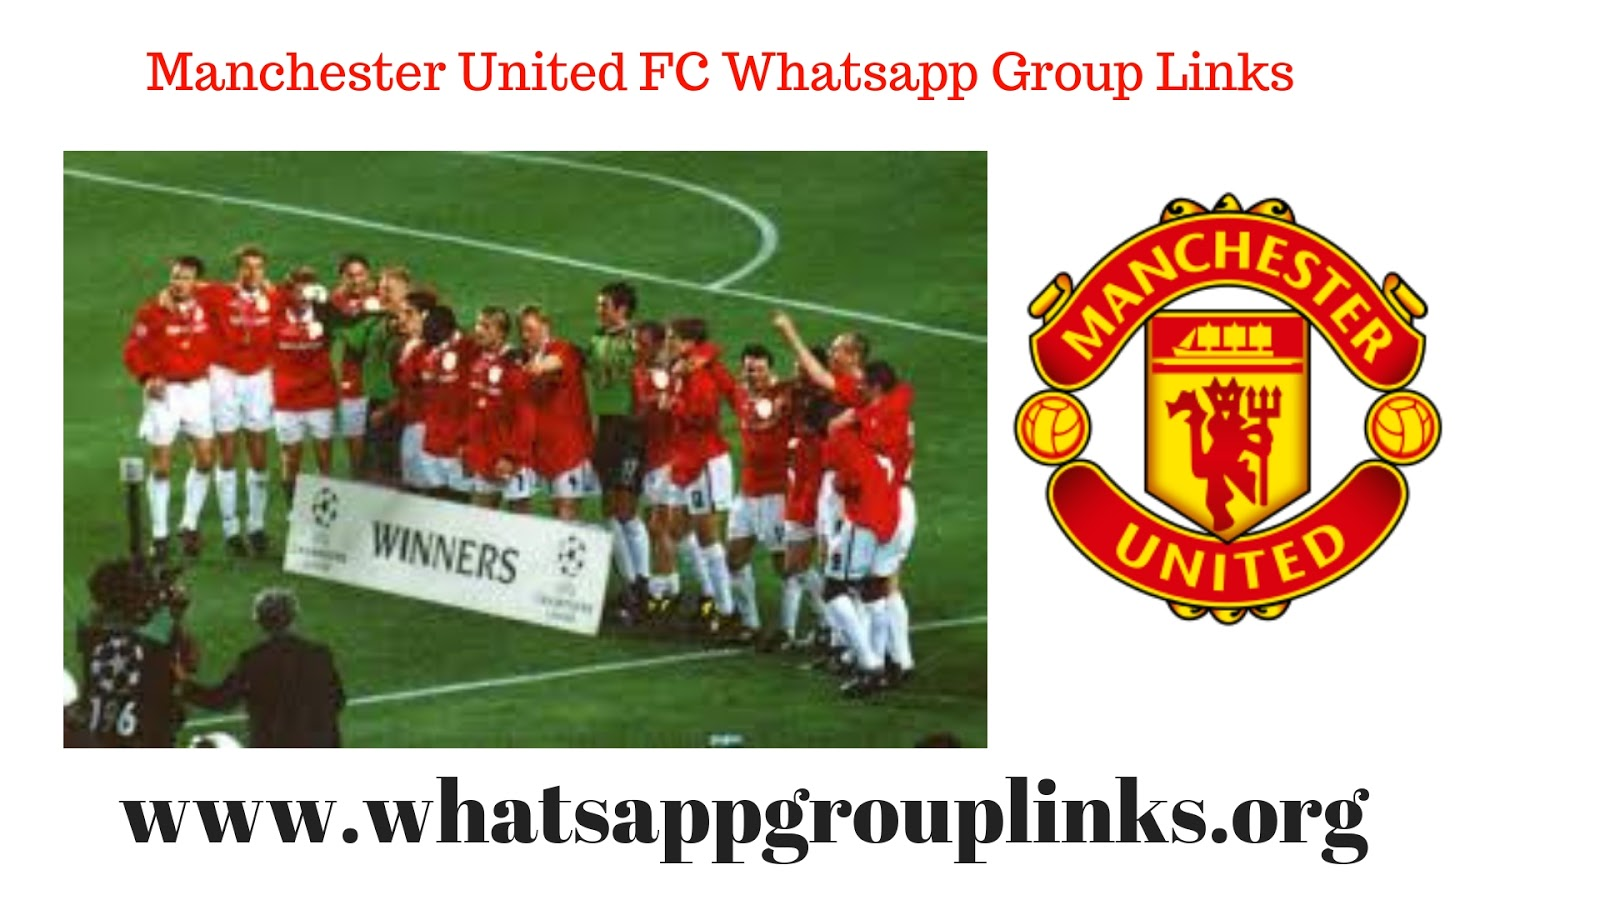 JOIN MANCHESTER UNITED FC WHATSAPP GROUP LINKS LIST